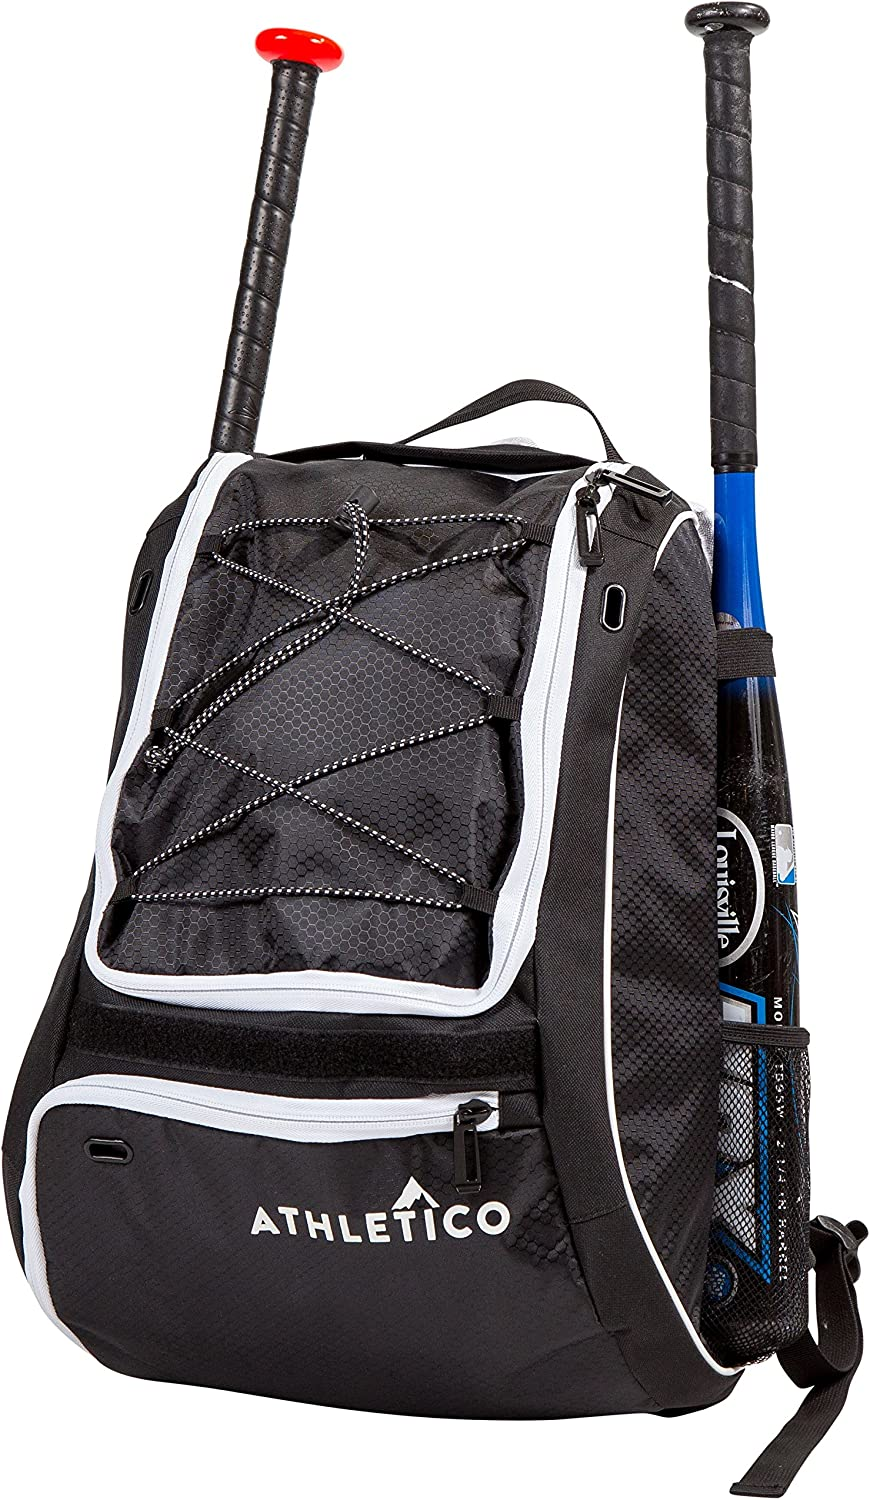 Athletico Baseball - Softball Gear Bag